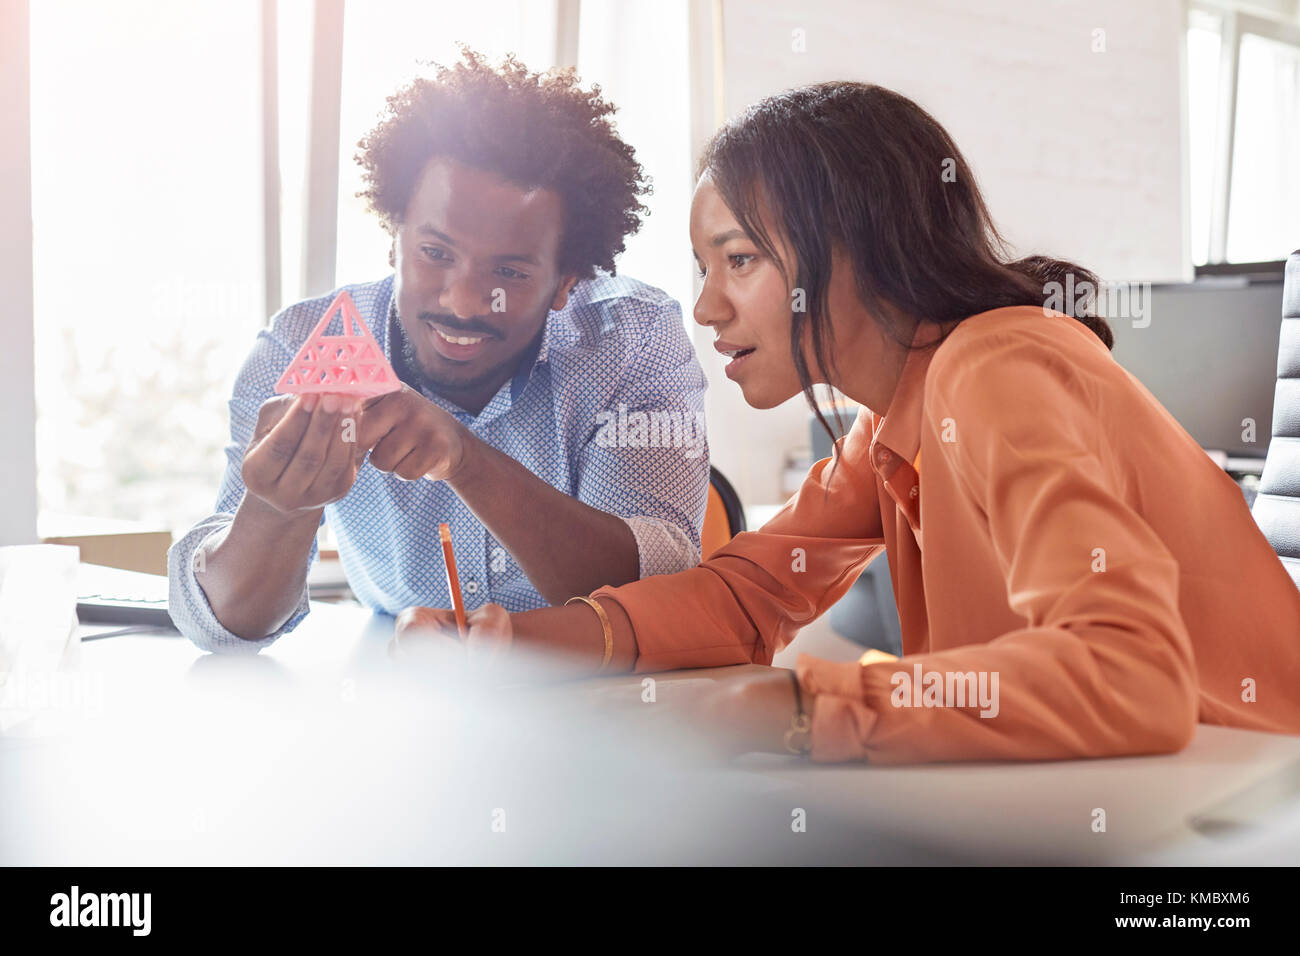 Design professionals examining triangle prototype in office - Stock Image